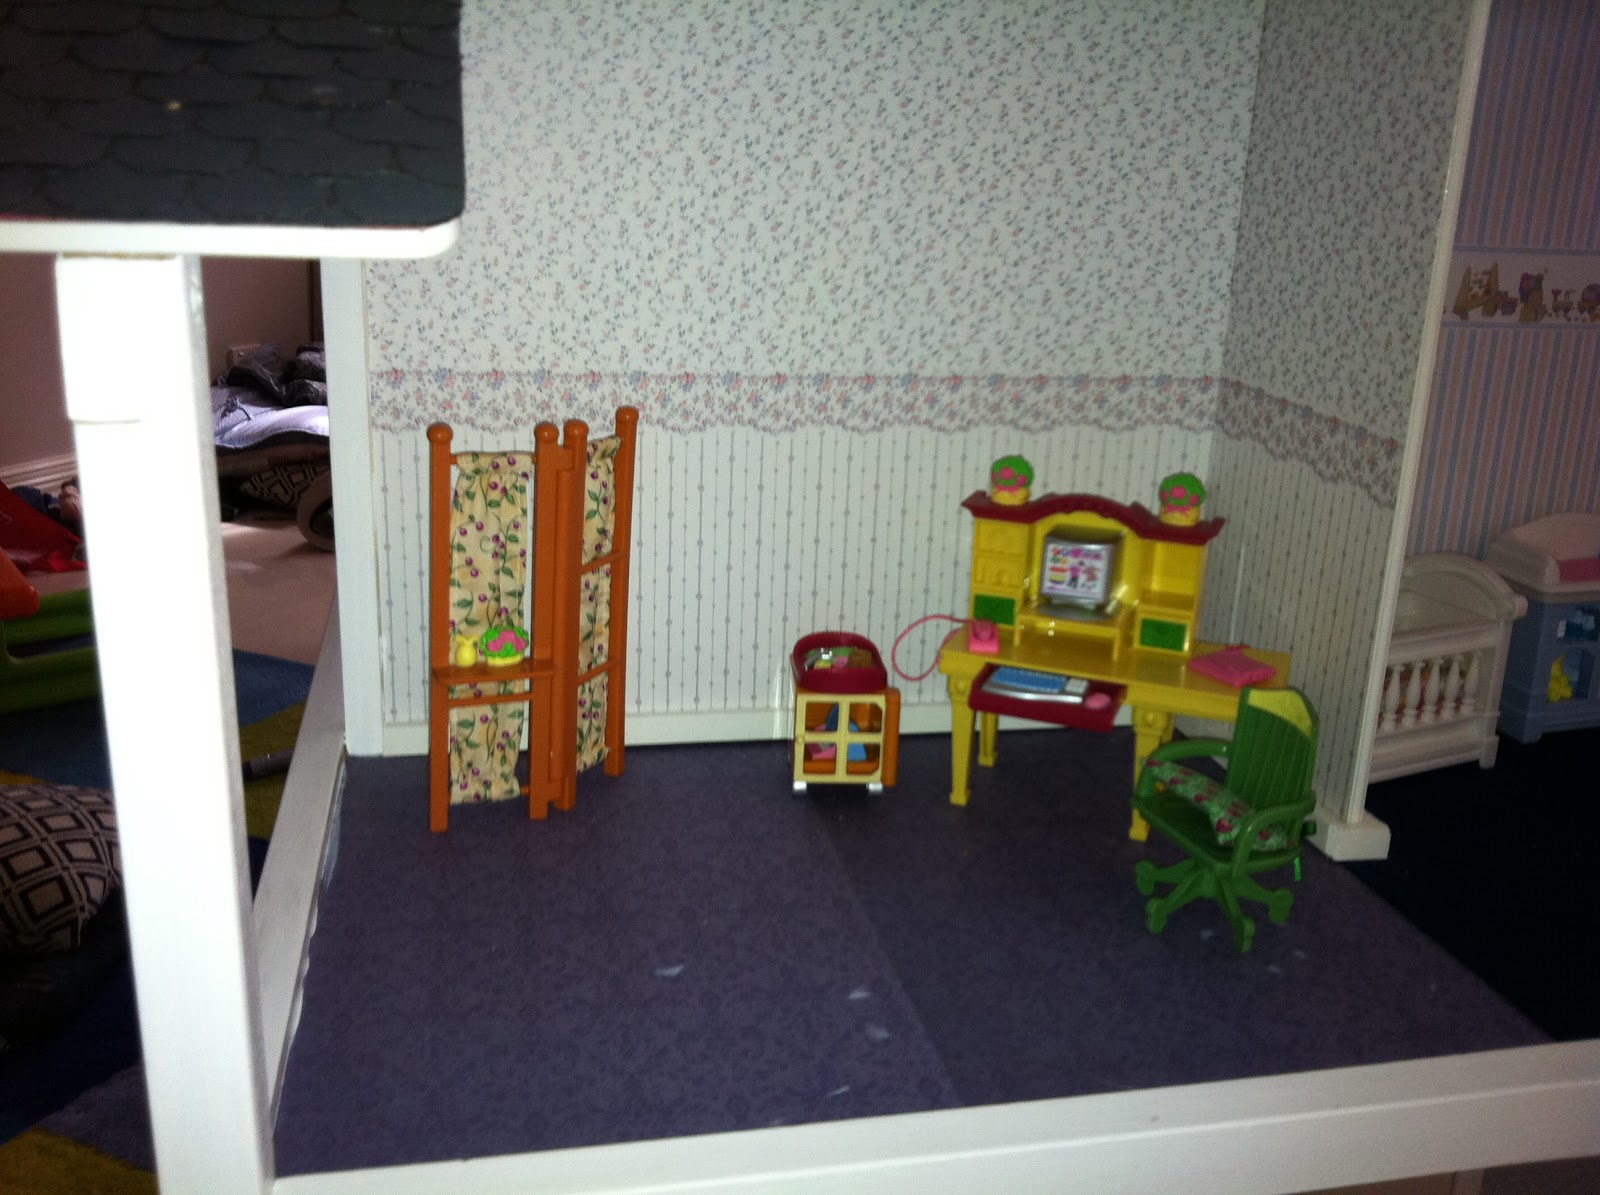 Scrapbook paper dollhouse wallpaper - If You Ever Need Kid S Dollhouse Furniture Then Check Out Ebay Gently Used Pieces Are Going For A Song And With A Good Wipe With Disinfectant